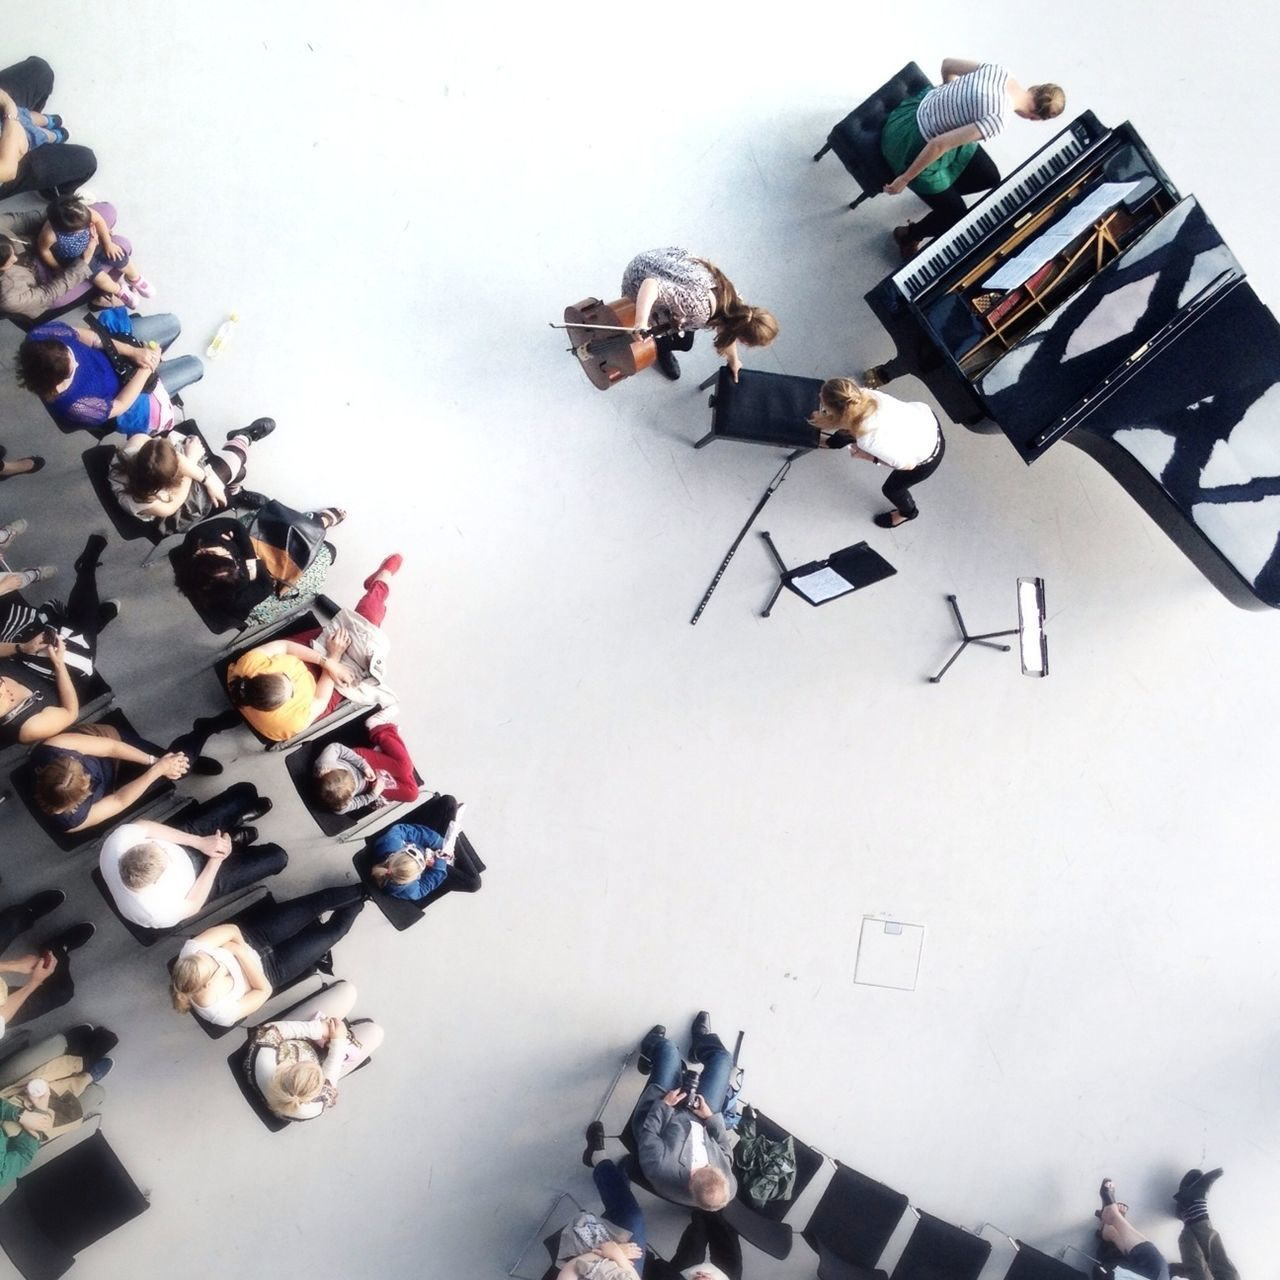 Directly above shot of audience watching musical concert